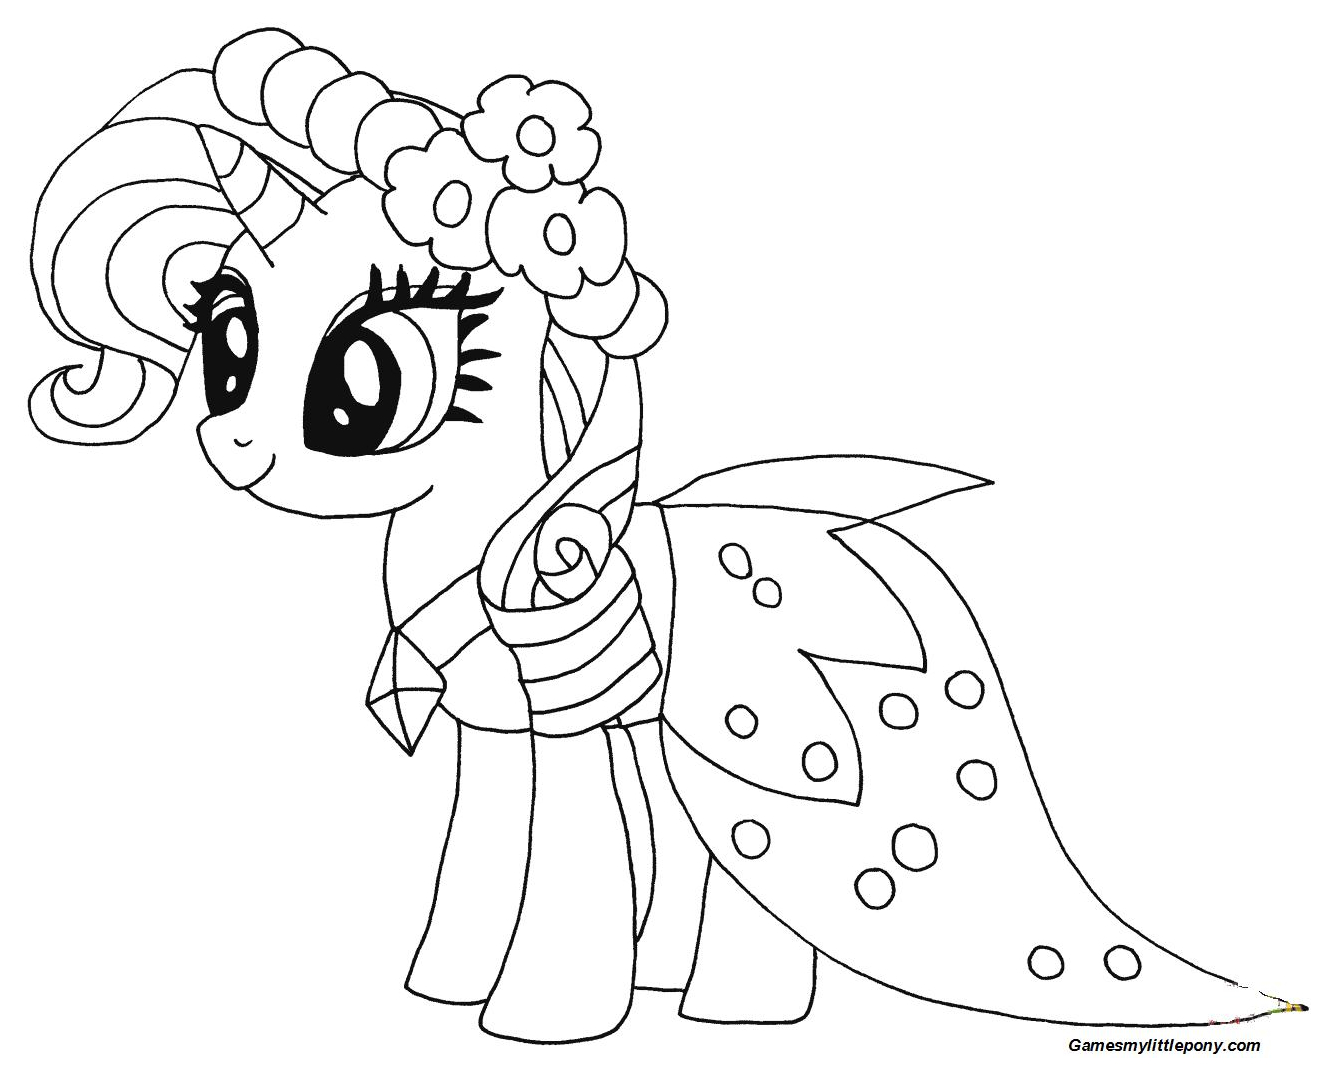 Princess Rarity from My Little Pony